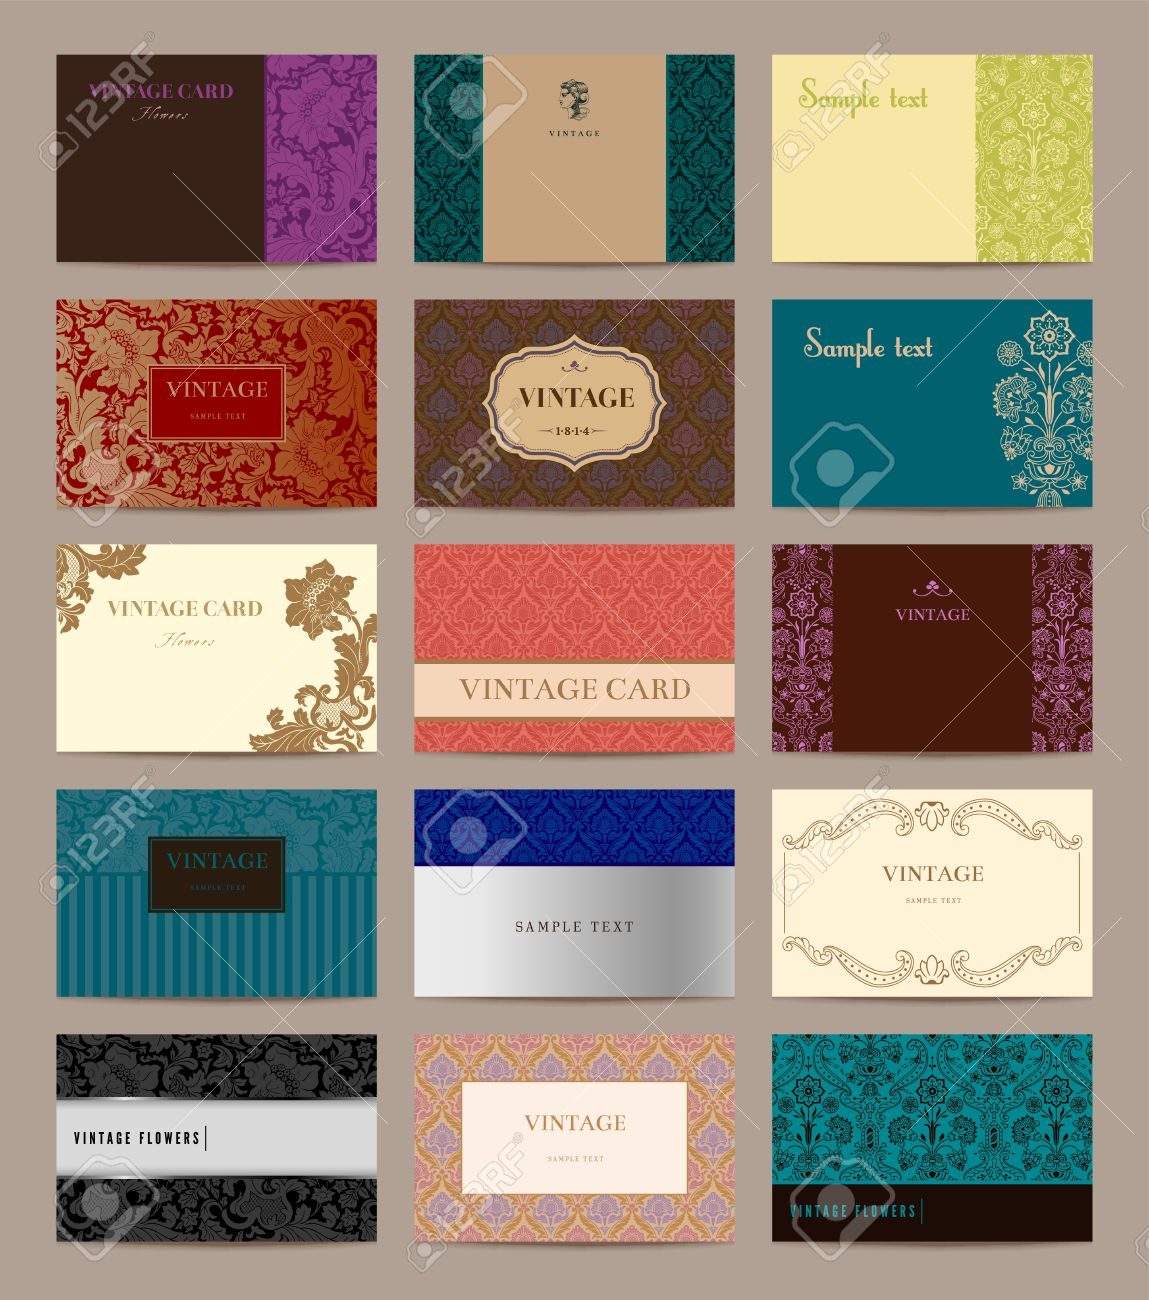 Set of vintage business cards fifteen pieces size 85 x 55 mm set of vintage business cards fifteen pieces size 85 x 55 mm stock vector reheart Choice Image